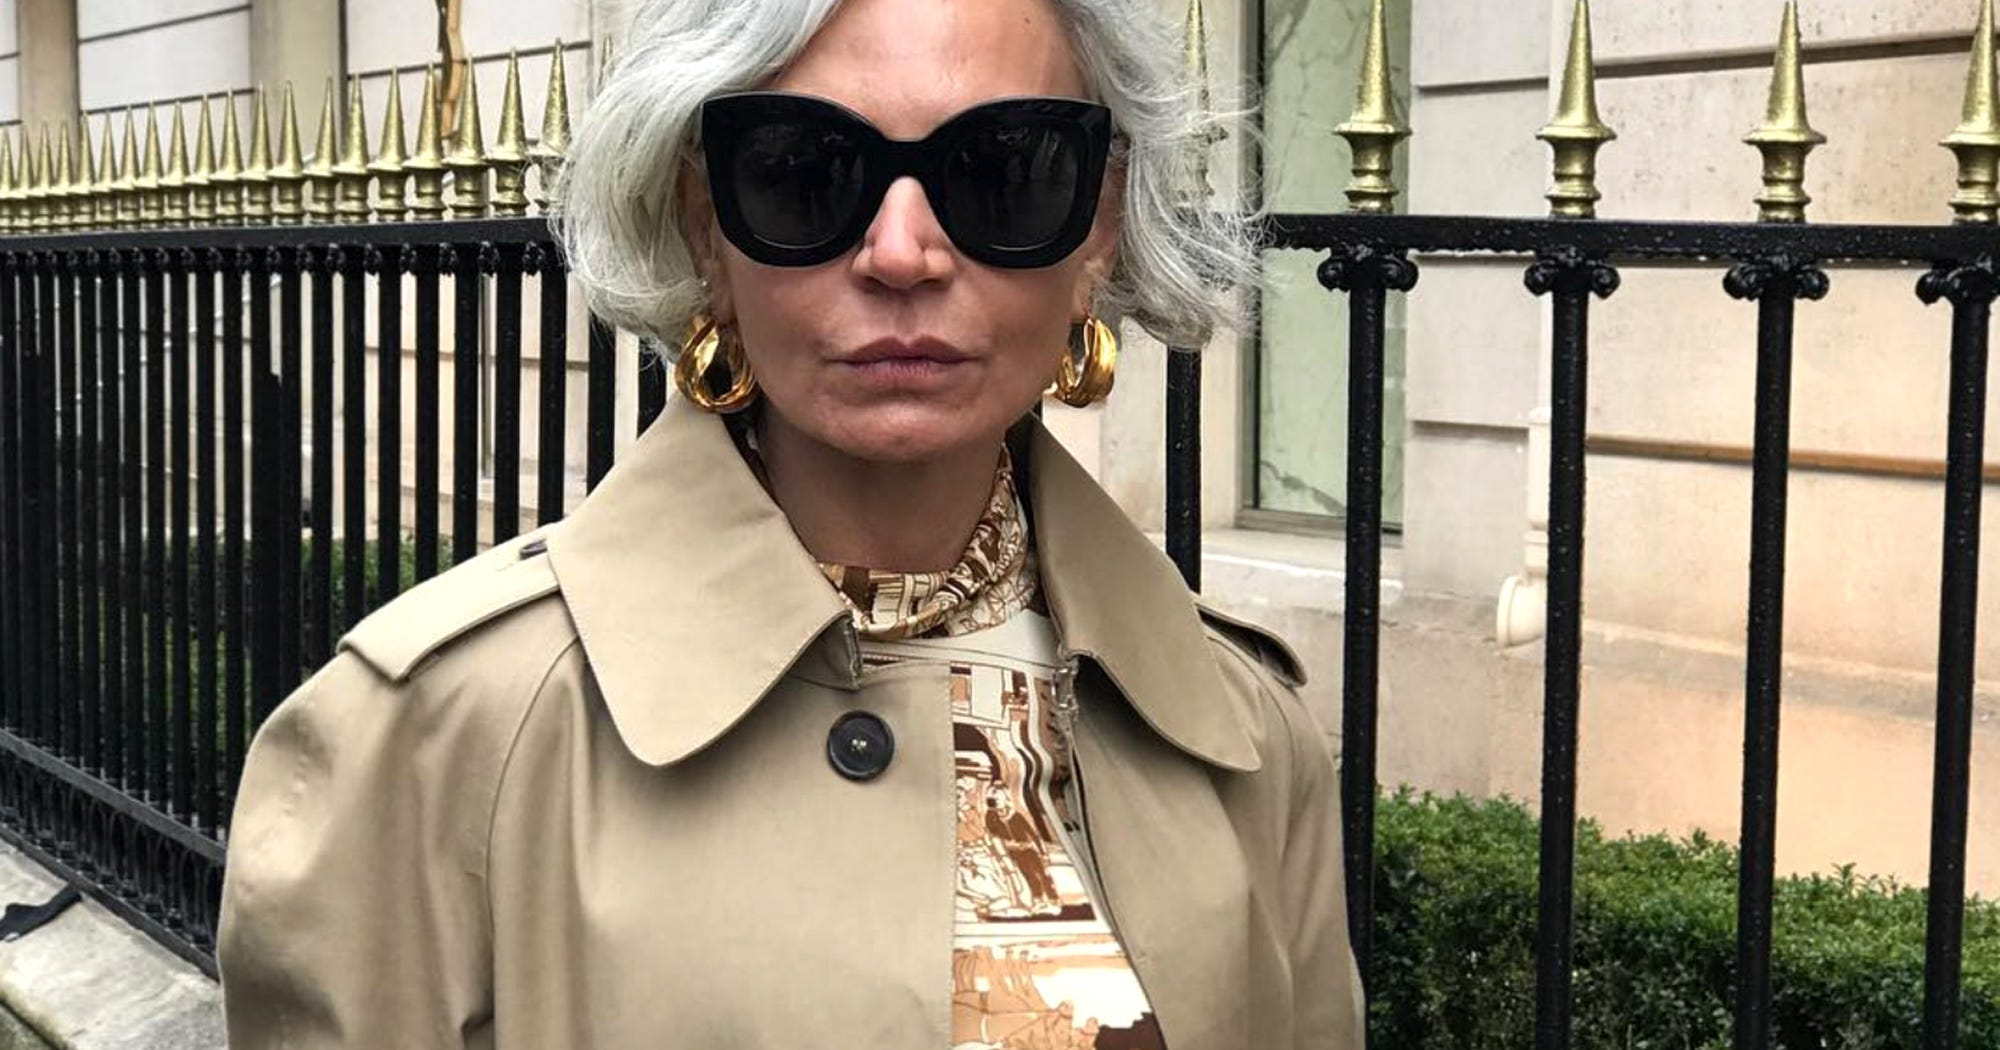 7 Older Women On Their Personal Style